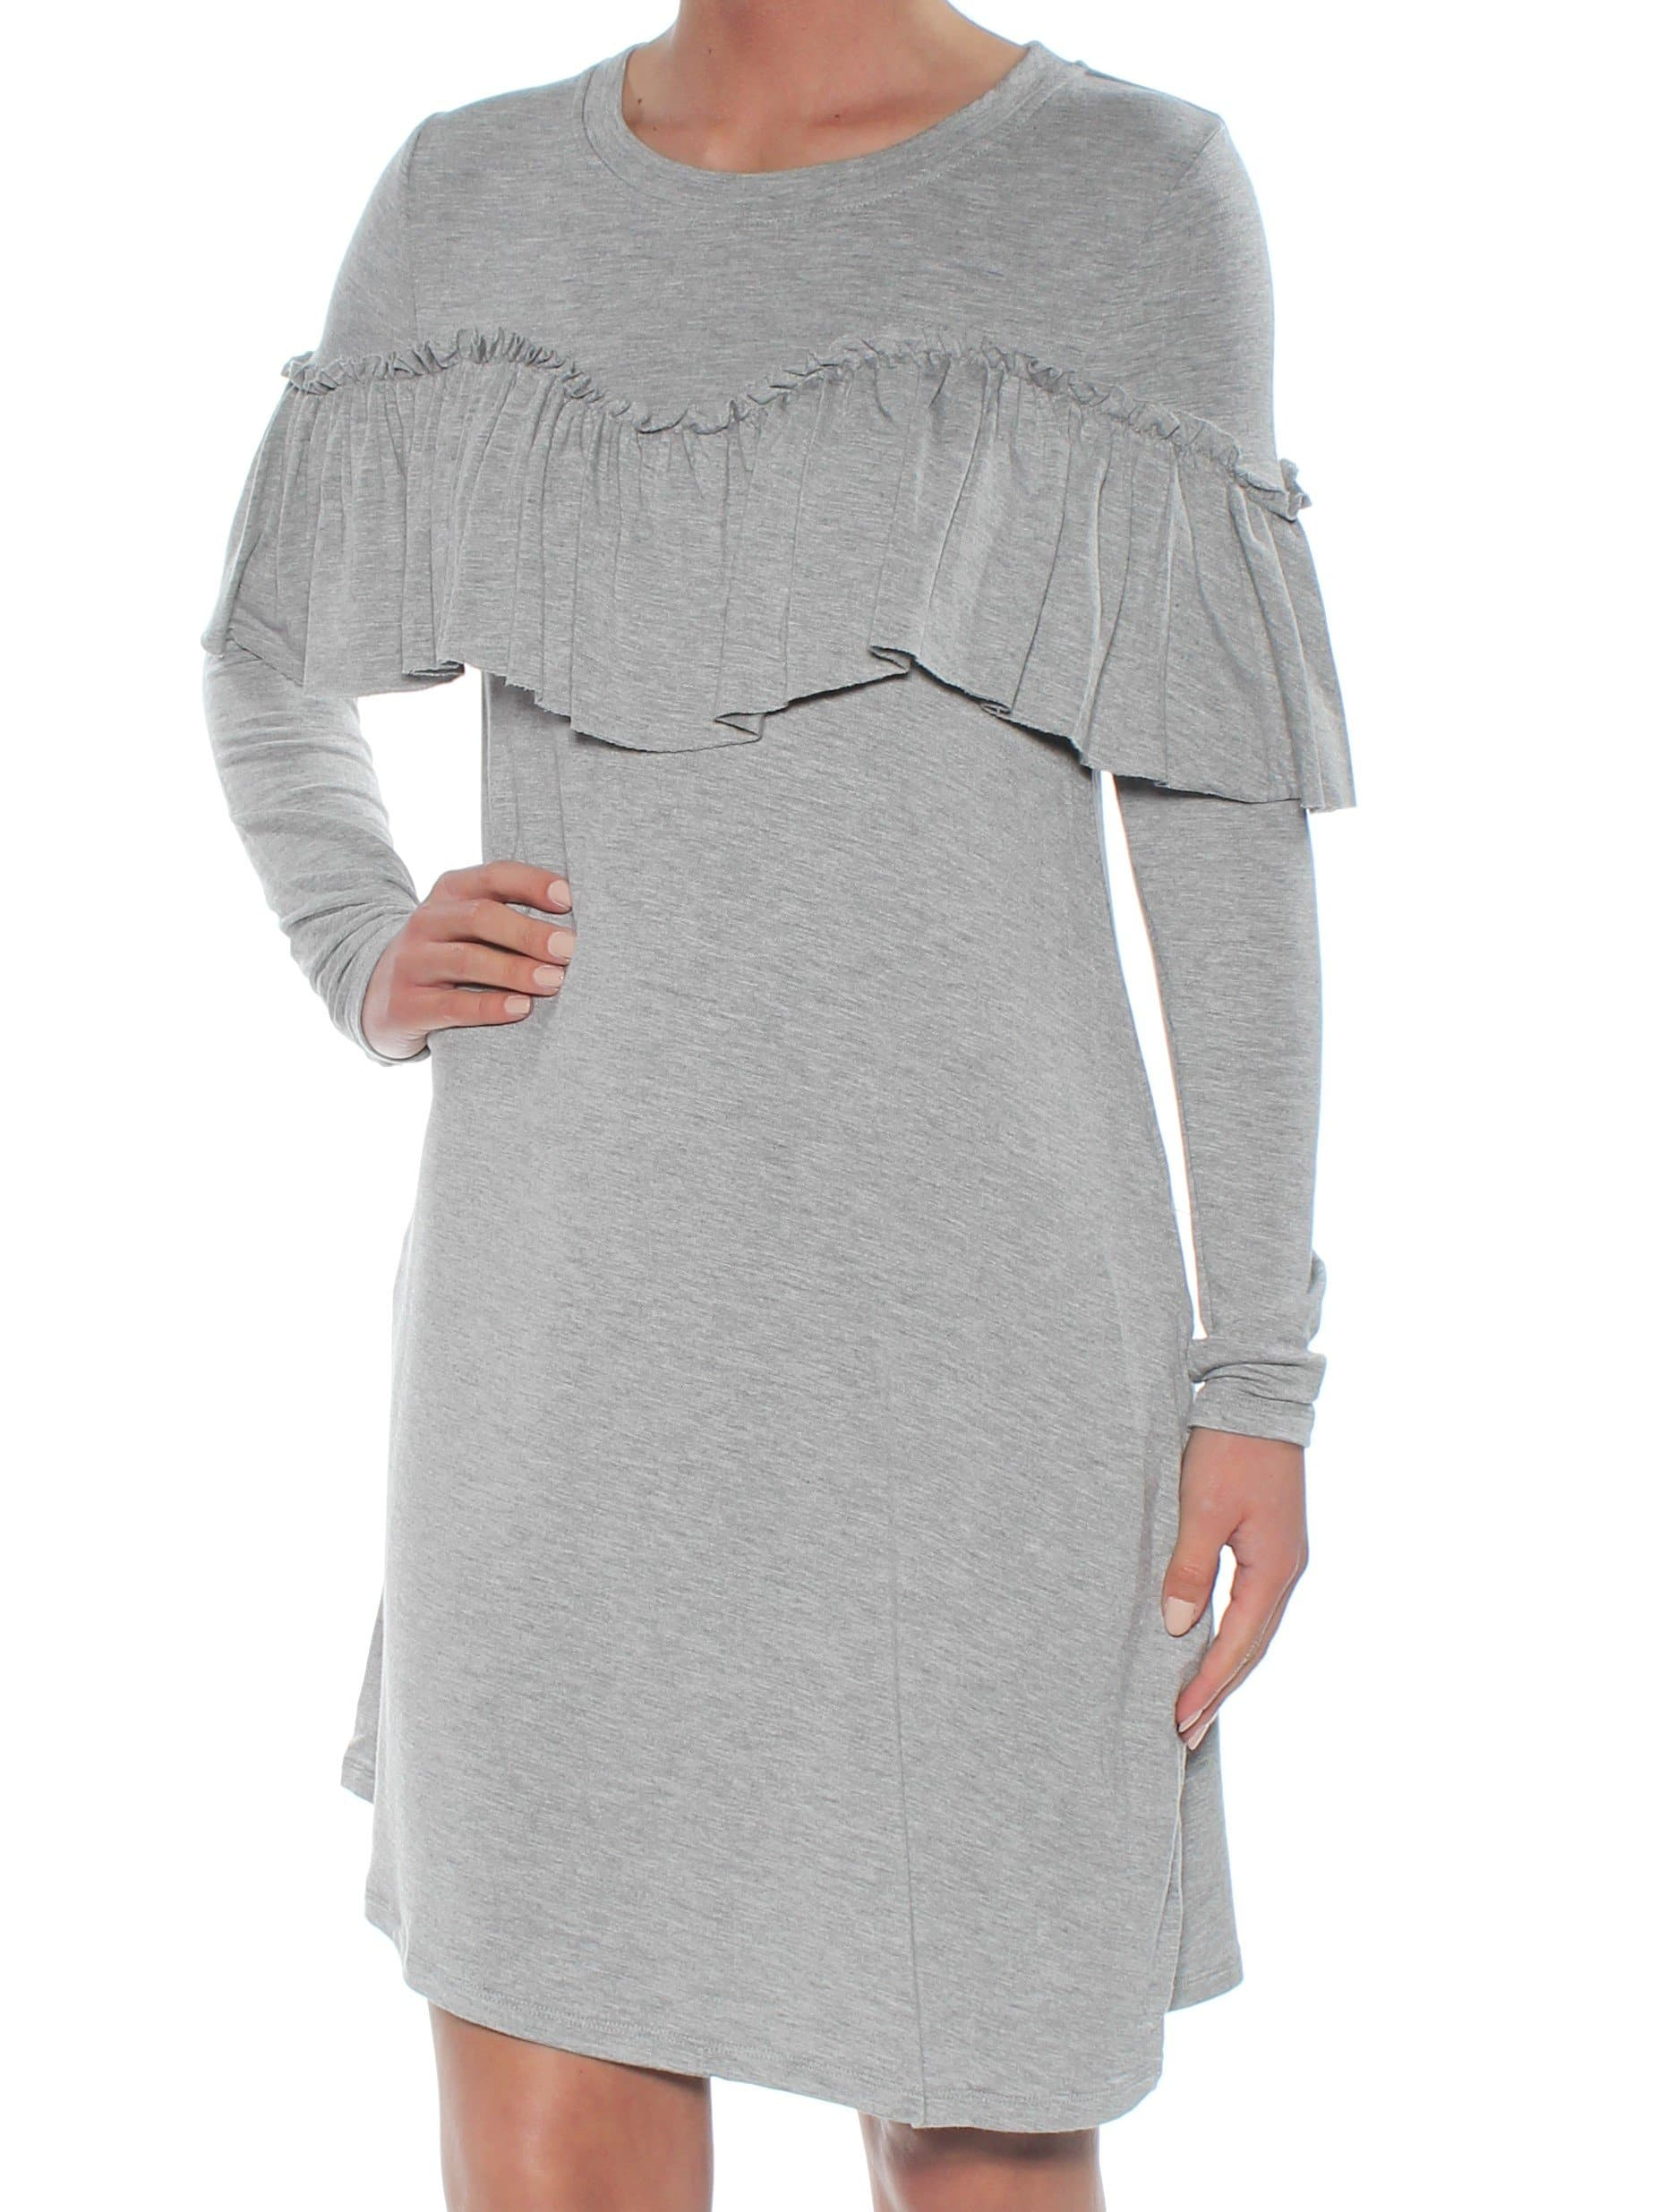 Gray Ruffled Long Sleeve Jumpsuit - FLJ CORPORATIONS